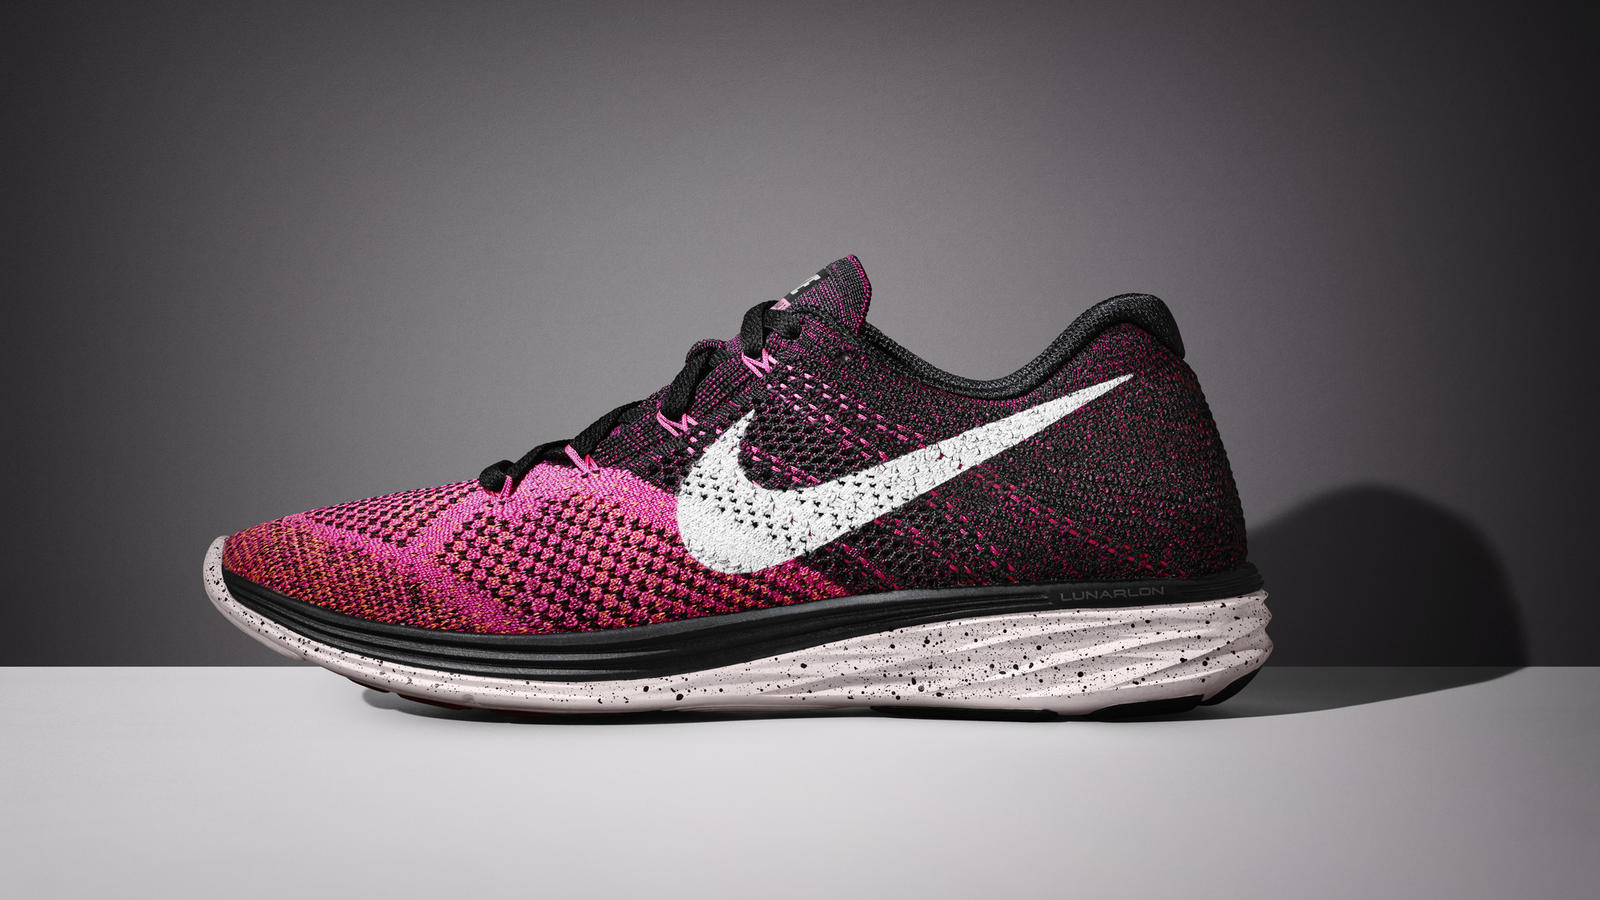 wholesale dealer ec4e8 851fc Impossibly Light and Incredibly Strong Marries Soft and Responsive  The Nike  Flyknit Lunar 3